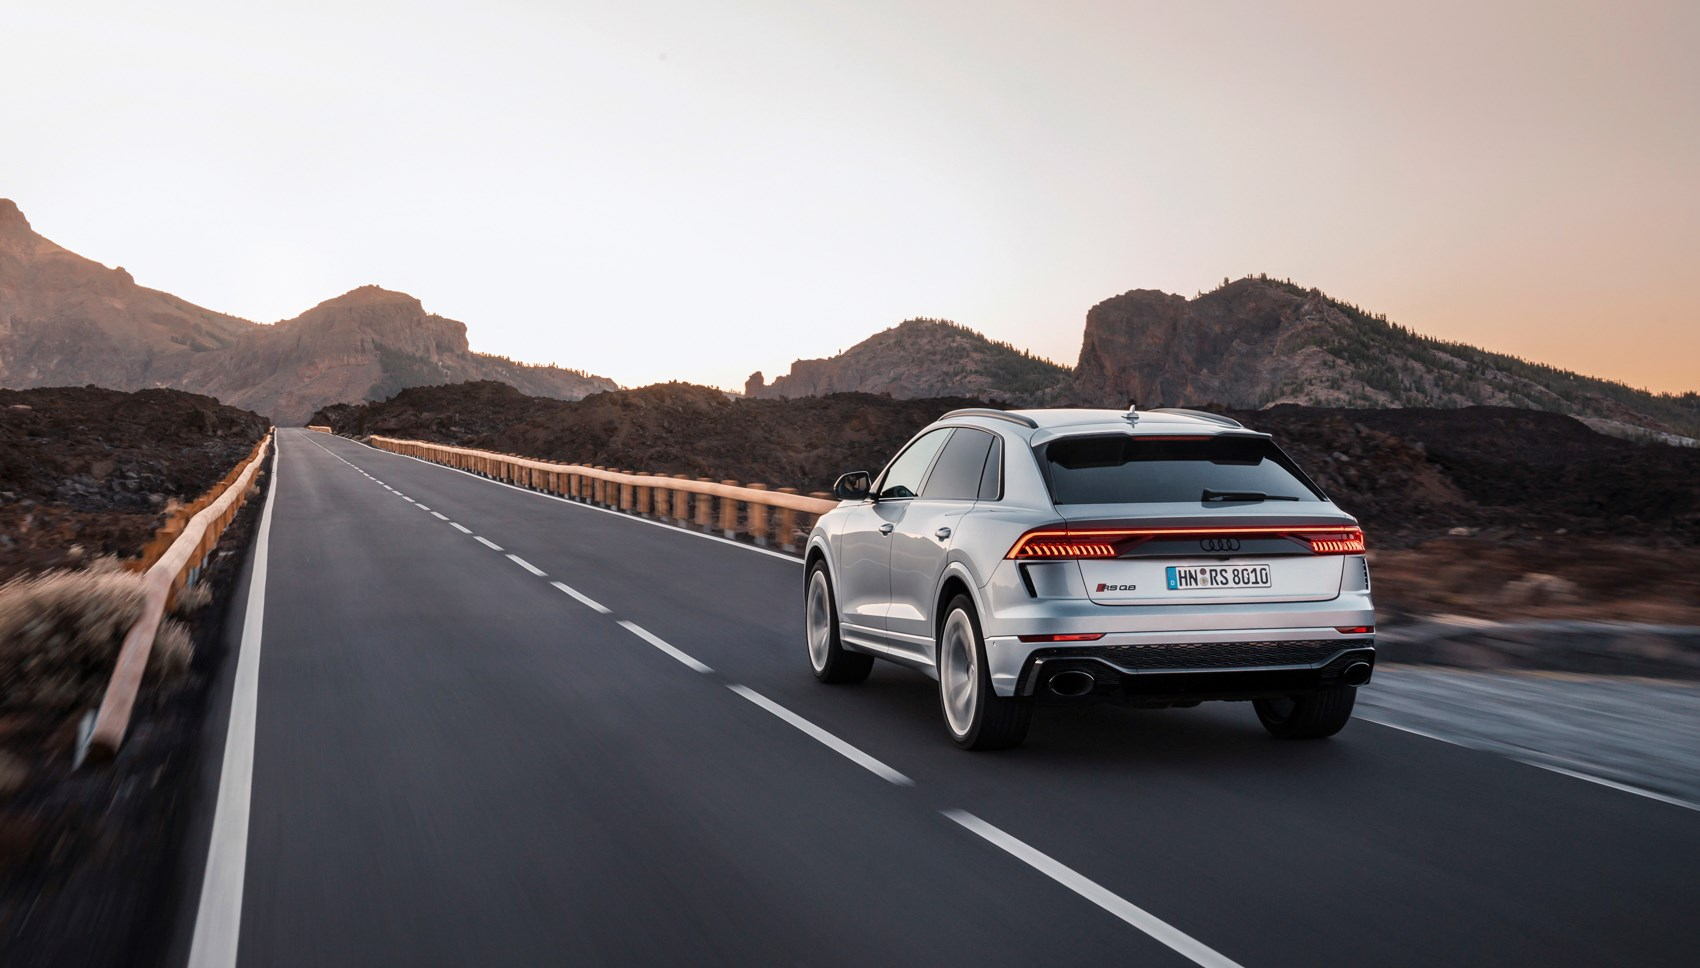 Audi RSQ8 rear tracking